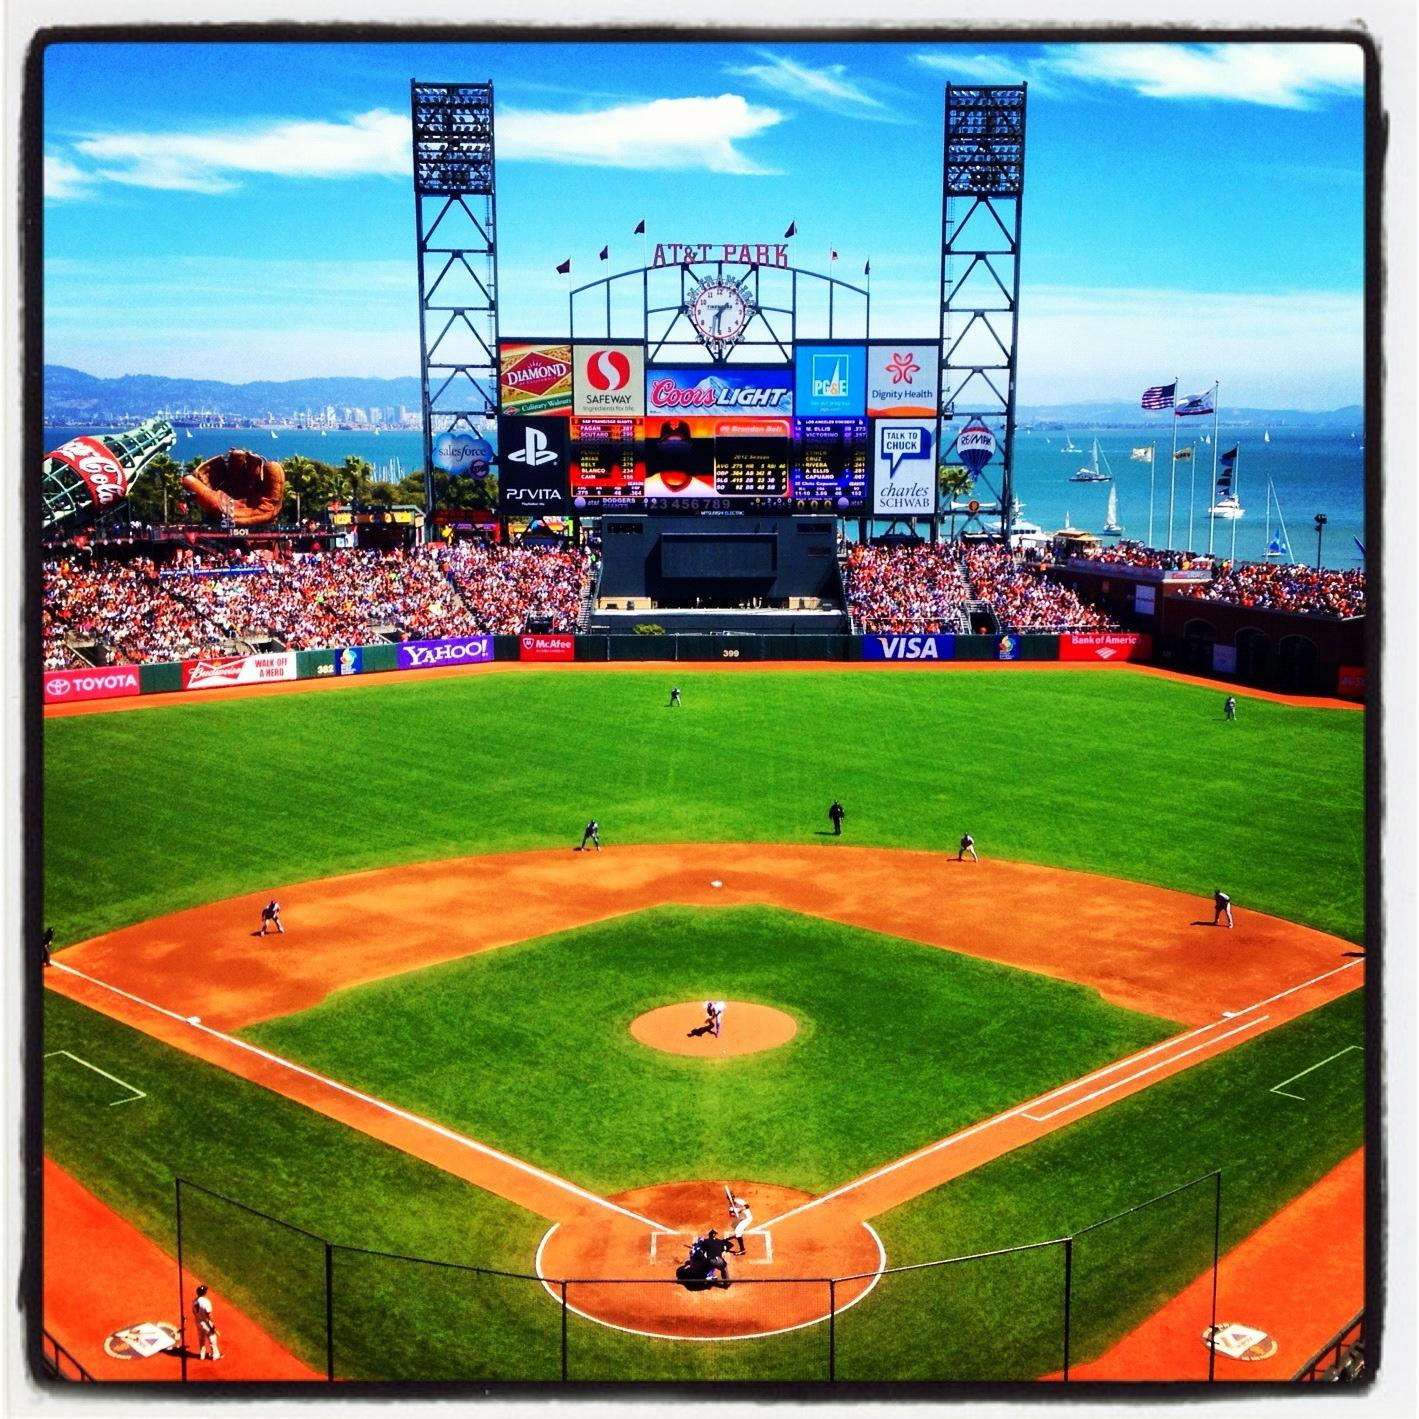 Photo of S.F. Giants ballpark with Twitter post about baseball heaven